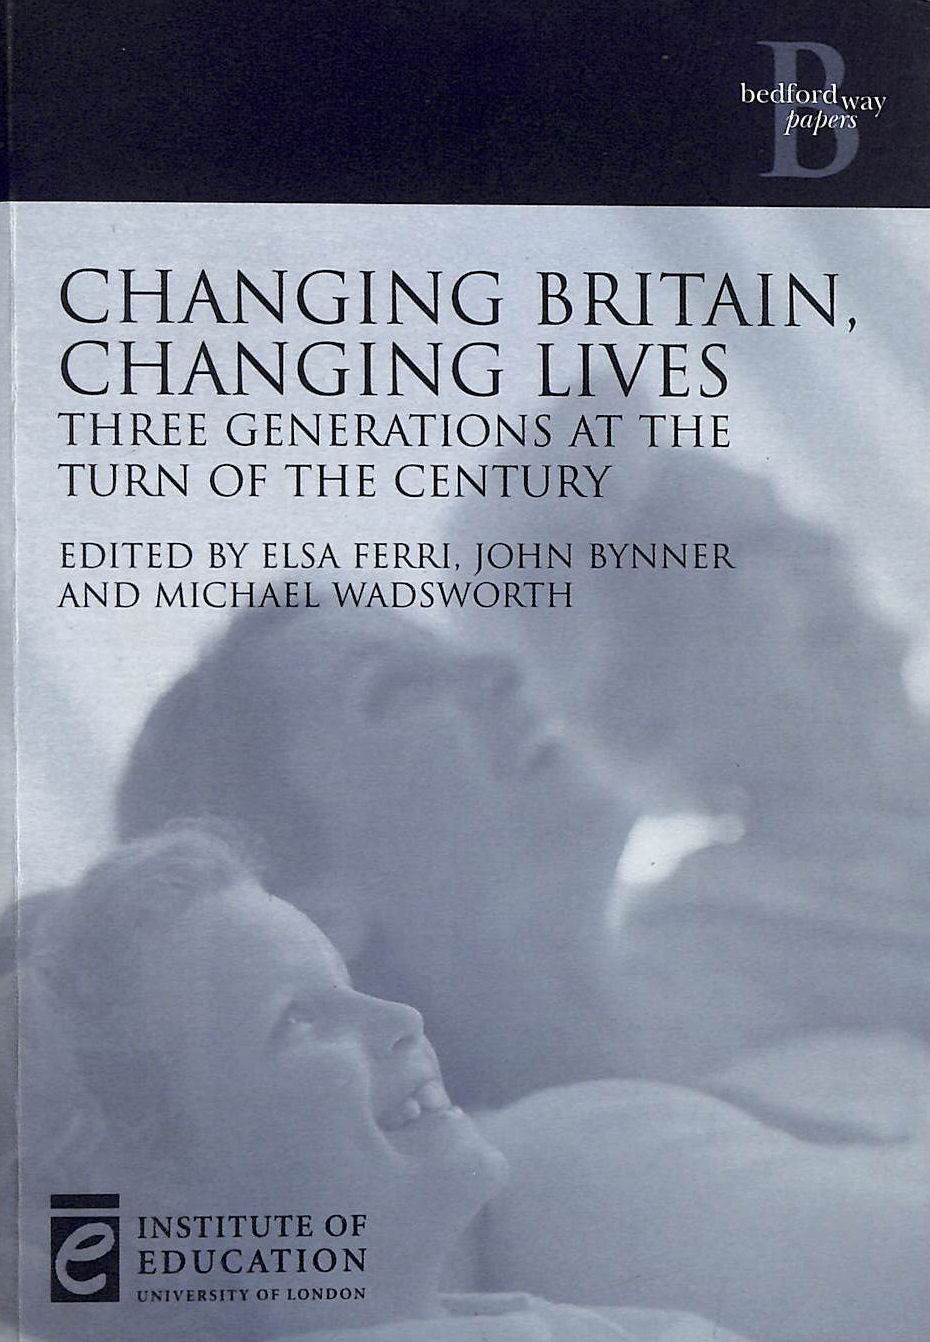 Image for Changing Britain, Changing Lives: Three generations at the turn of the century (Bedford Way Papers)